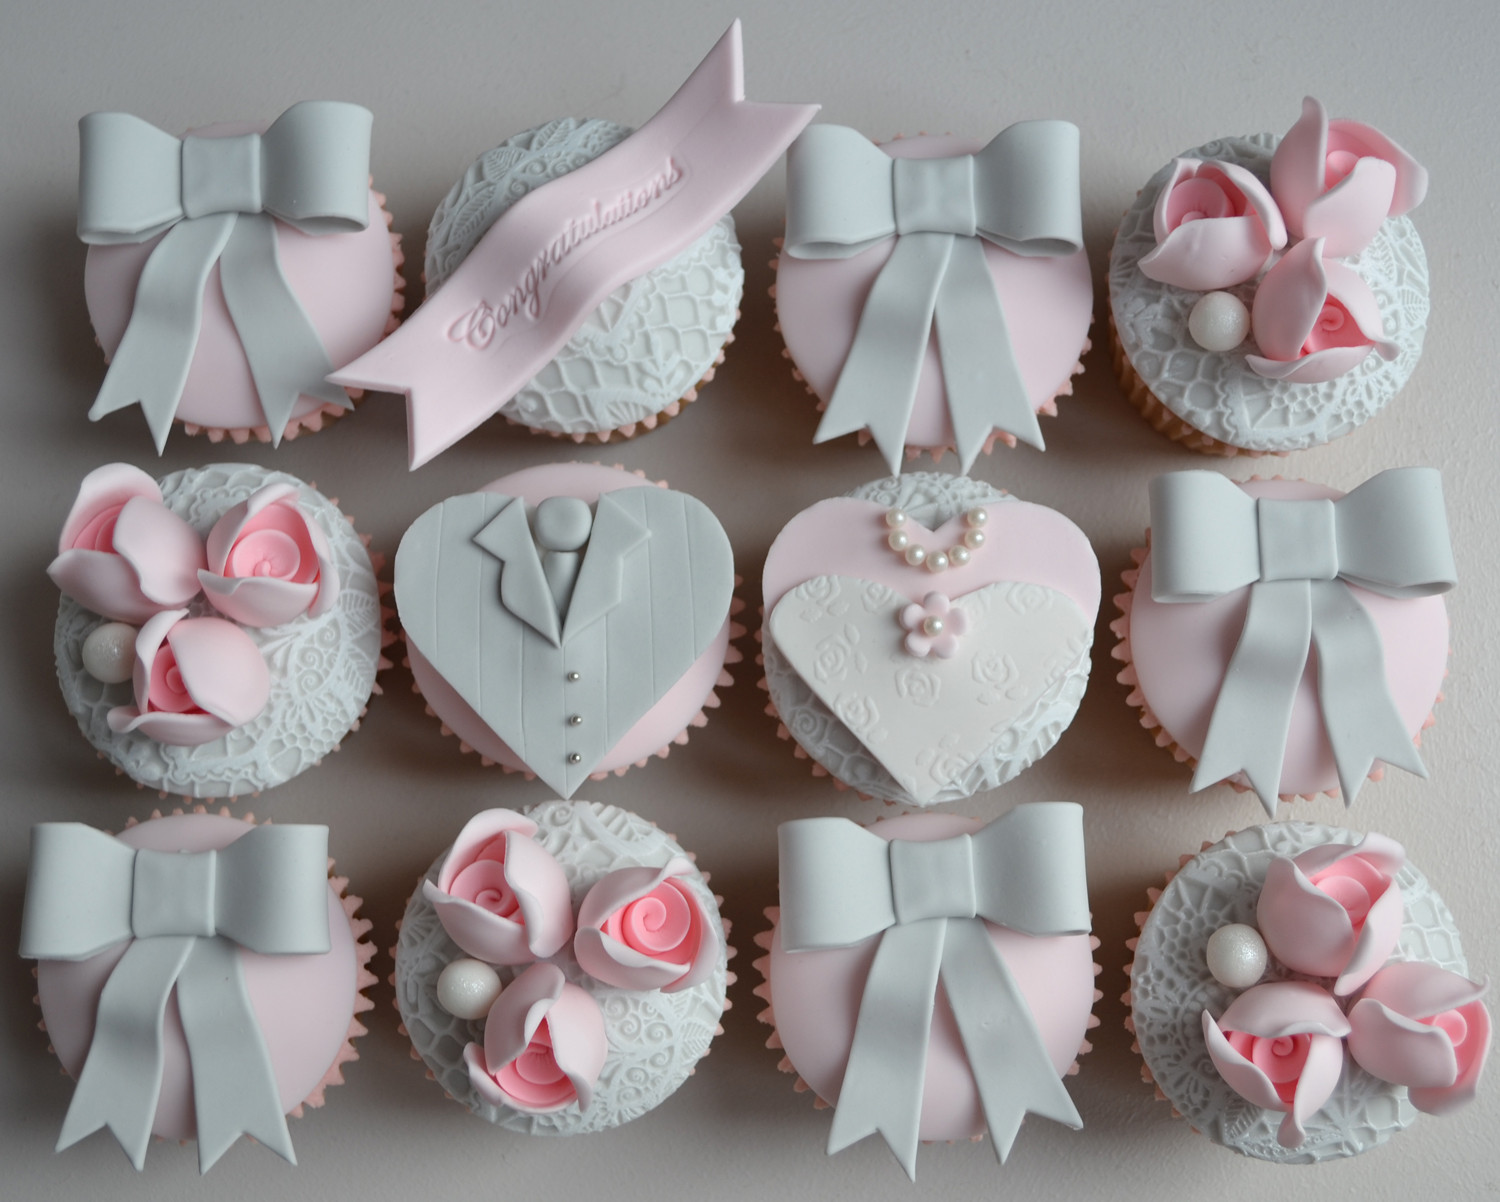 Cupcakes For Weddings  Little Paper Cakes Vintage Wedding Bride and Groom Cupcakes